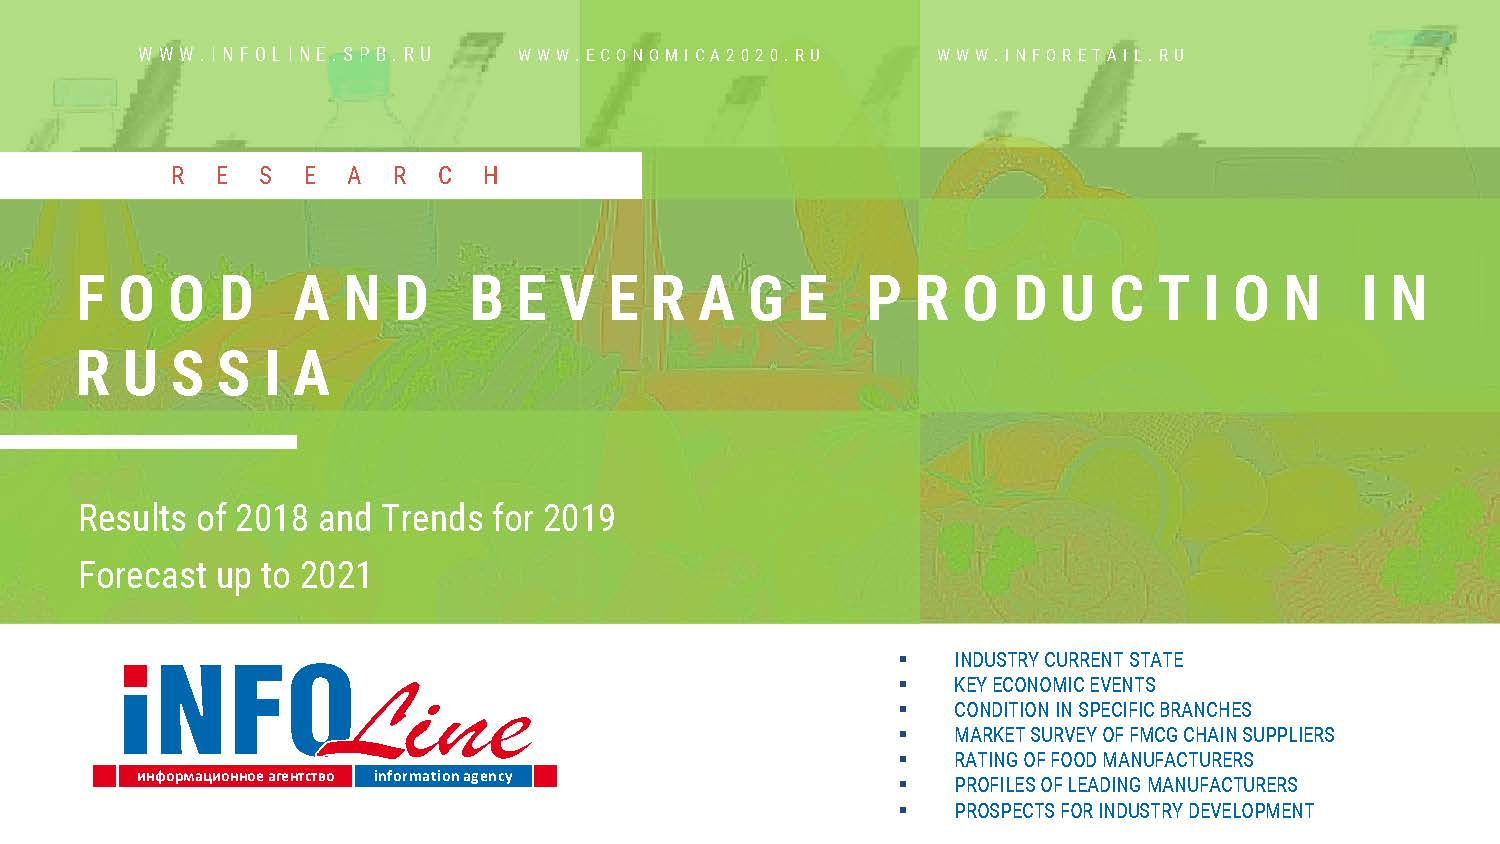 """Food and beverage production in Russia. Results of 2018 and Trends for 2019. Forecast up to 2021"""